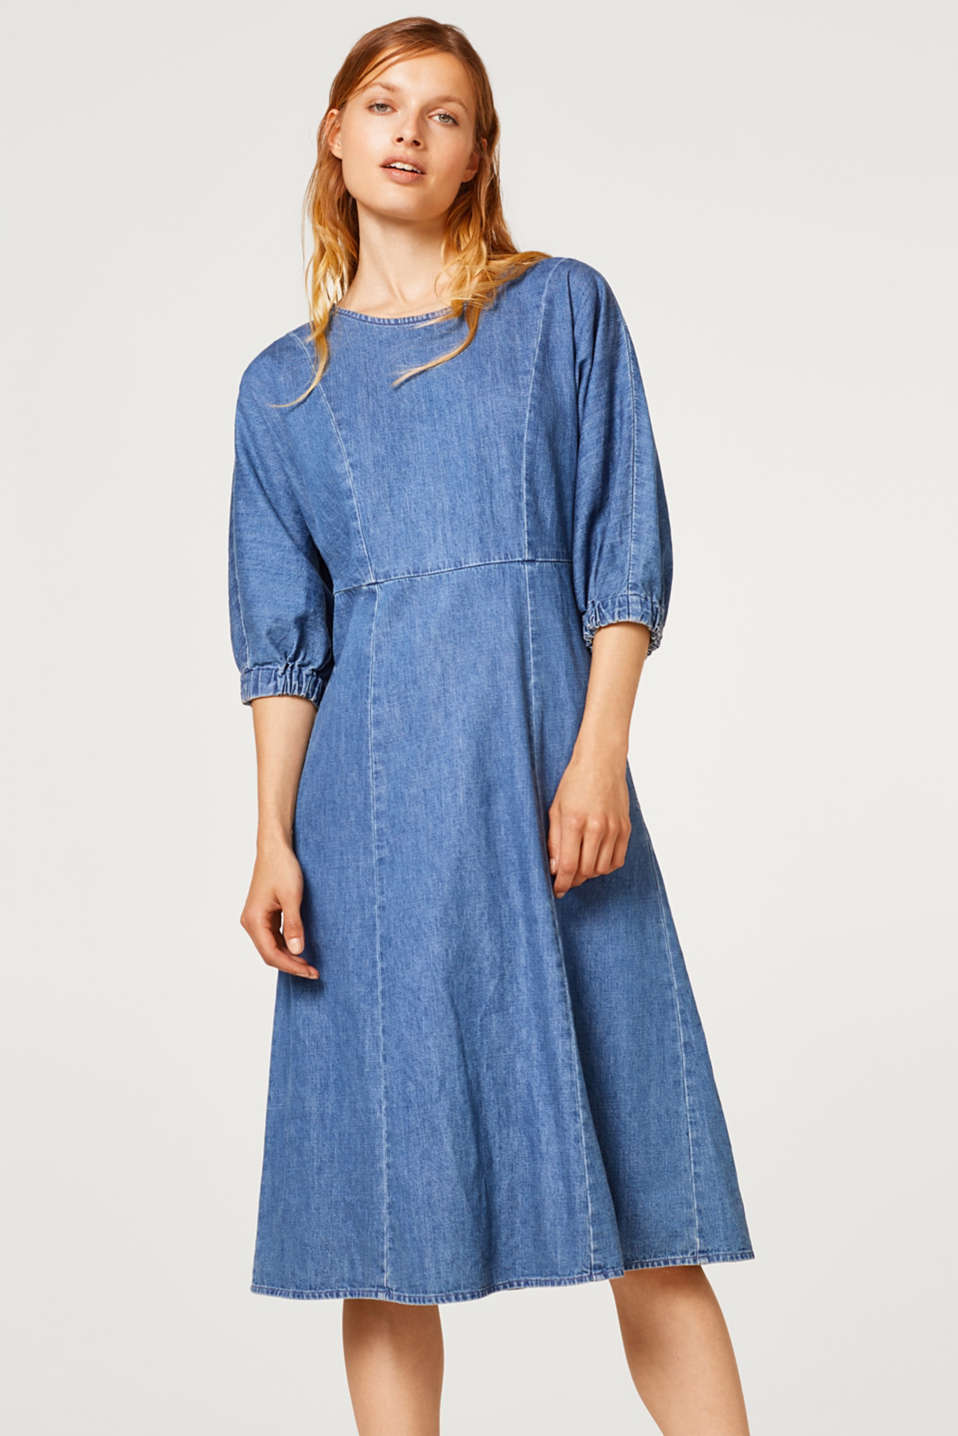 edc - Denim dress in midi length, 100% cotton